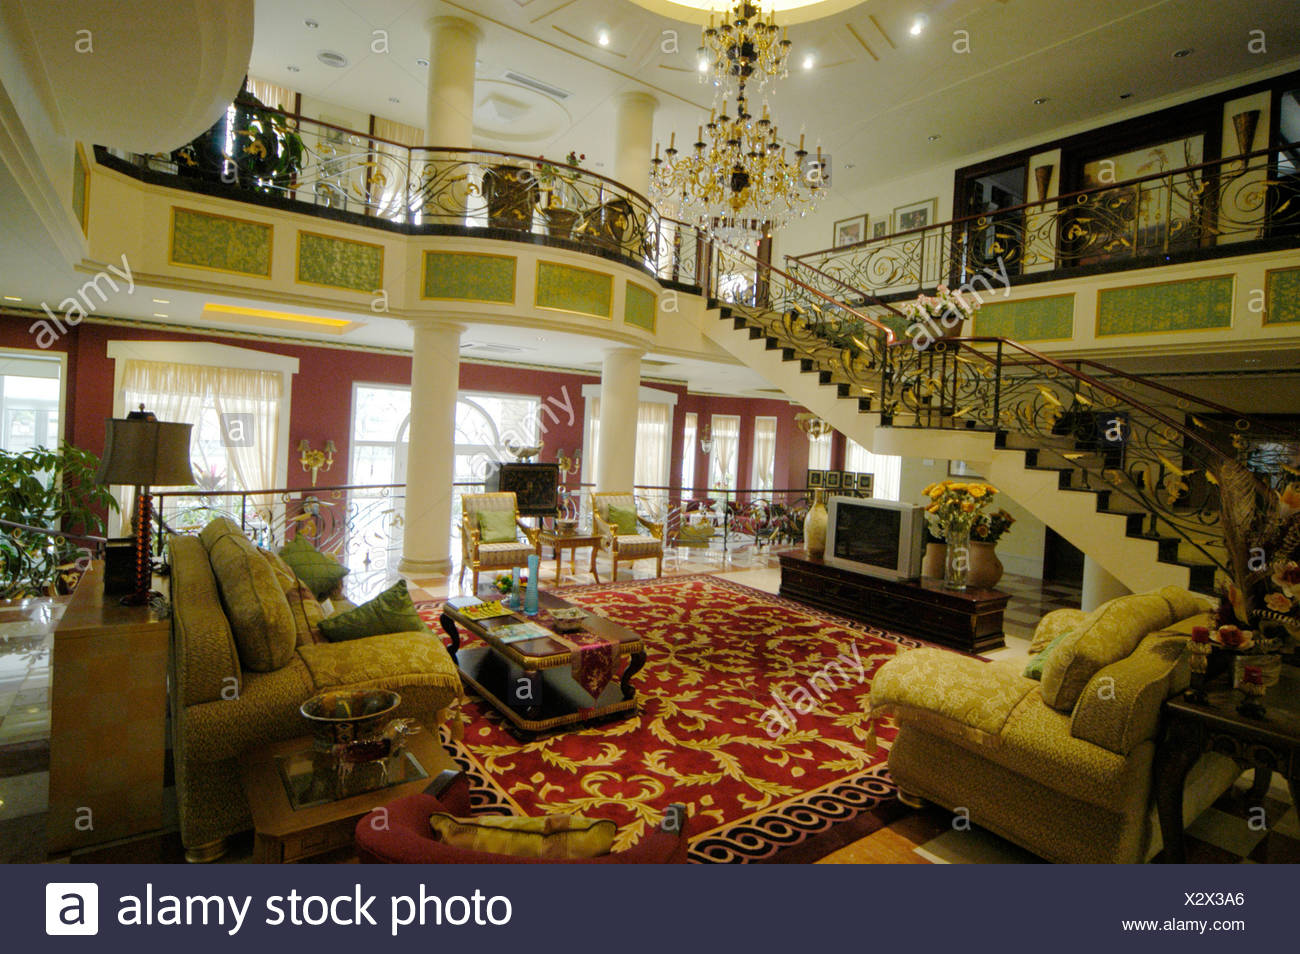 Living Room Of A Rich Chinese Family, China